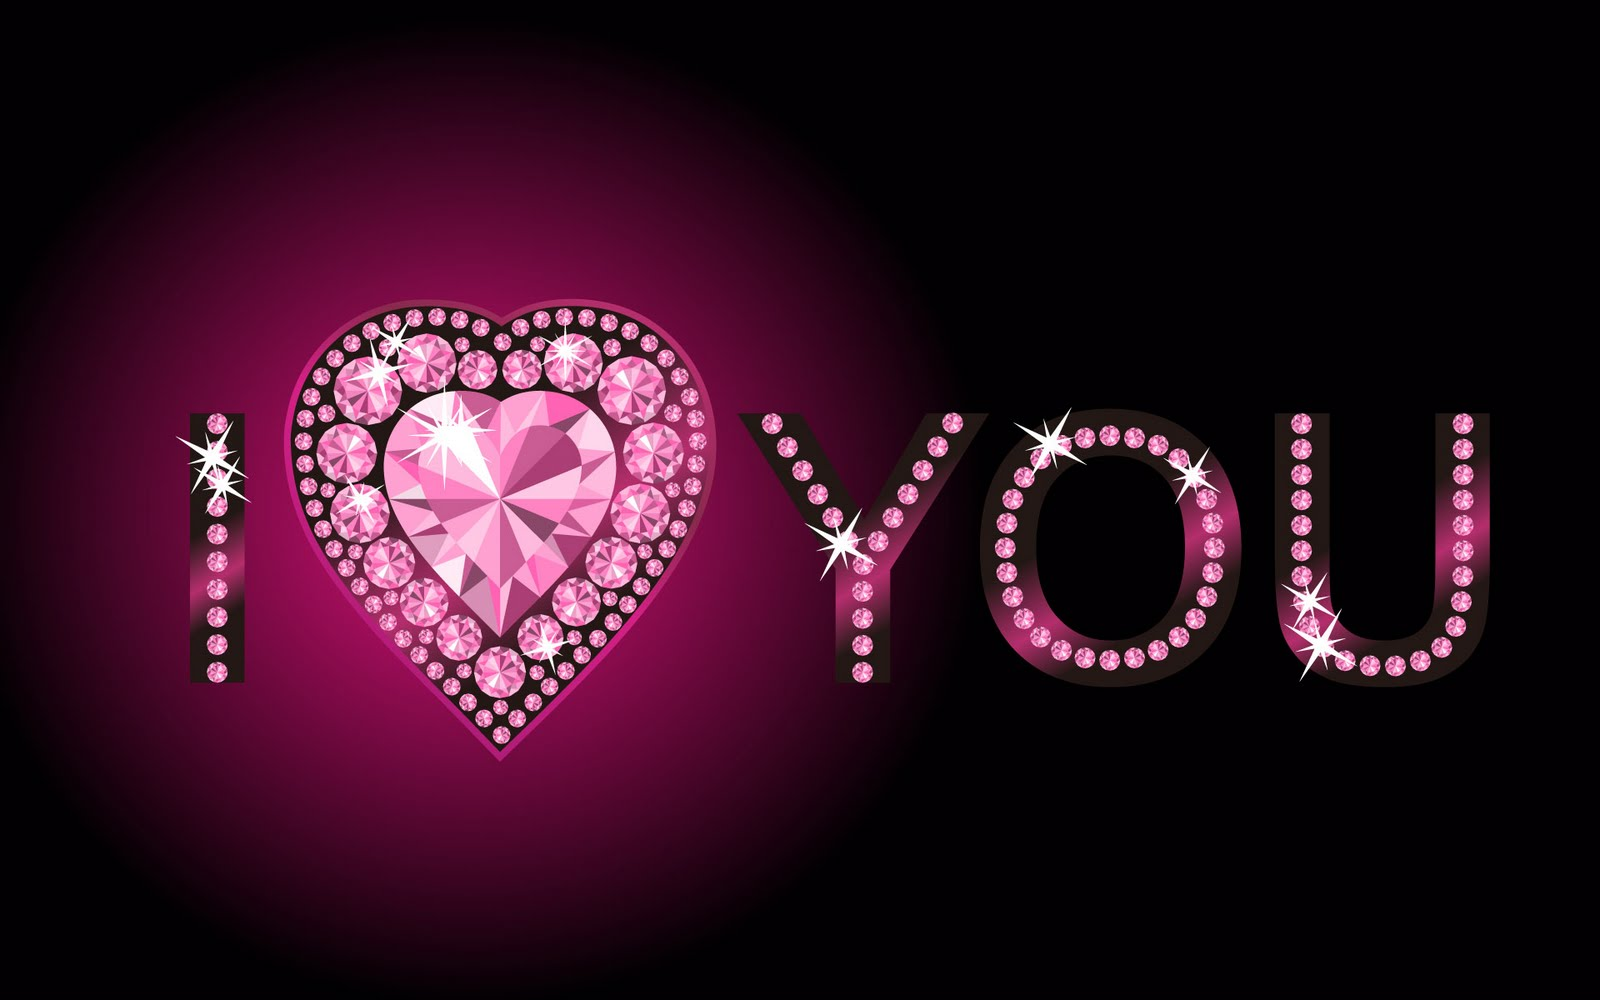 http://1.bp.blogspot.com/_r_rtt8KUl7Y/S-uIlqYxyXI/AAAAAAAAADQ/HDhpHyV8Lcw/s1600/i+love+you+with+diamond+decoration.jpg